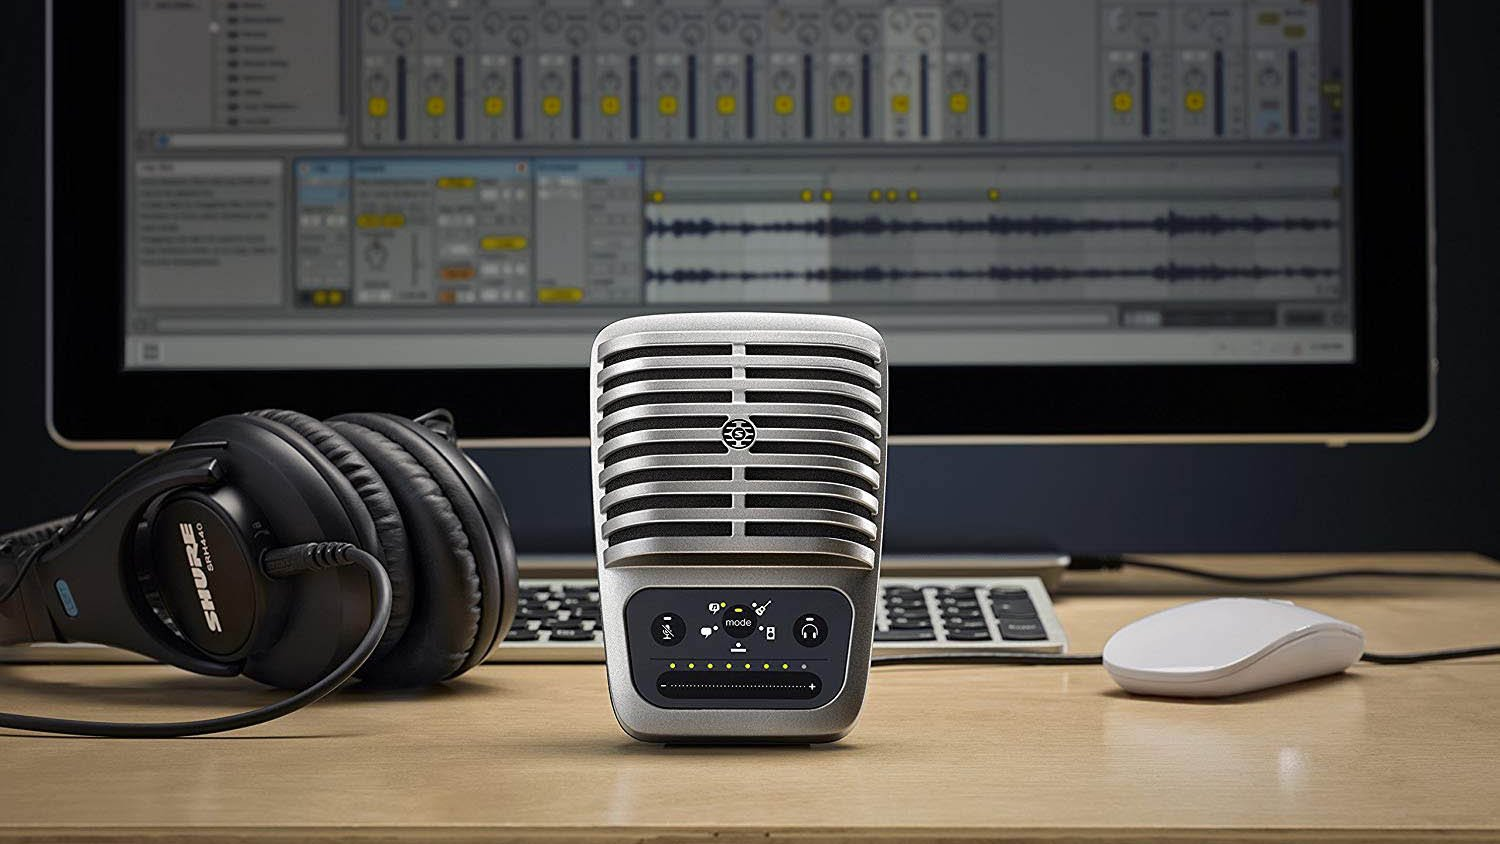 The Best USB Microphones: The best microphones for podcasting, game streaming, music, chat and more